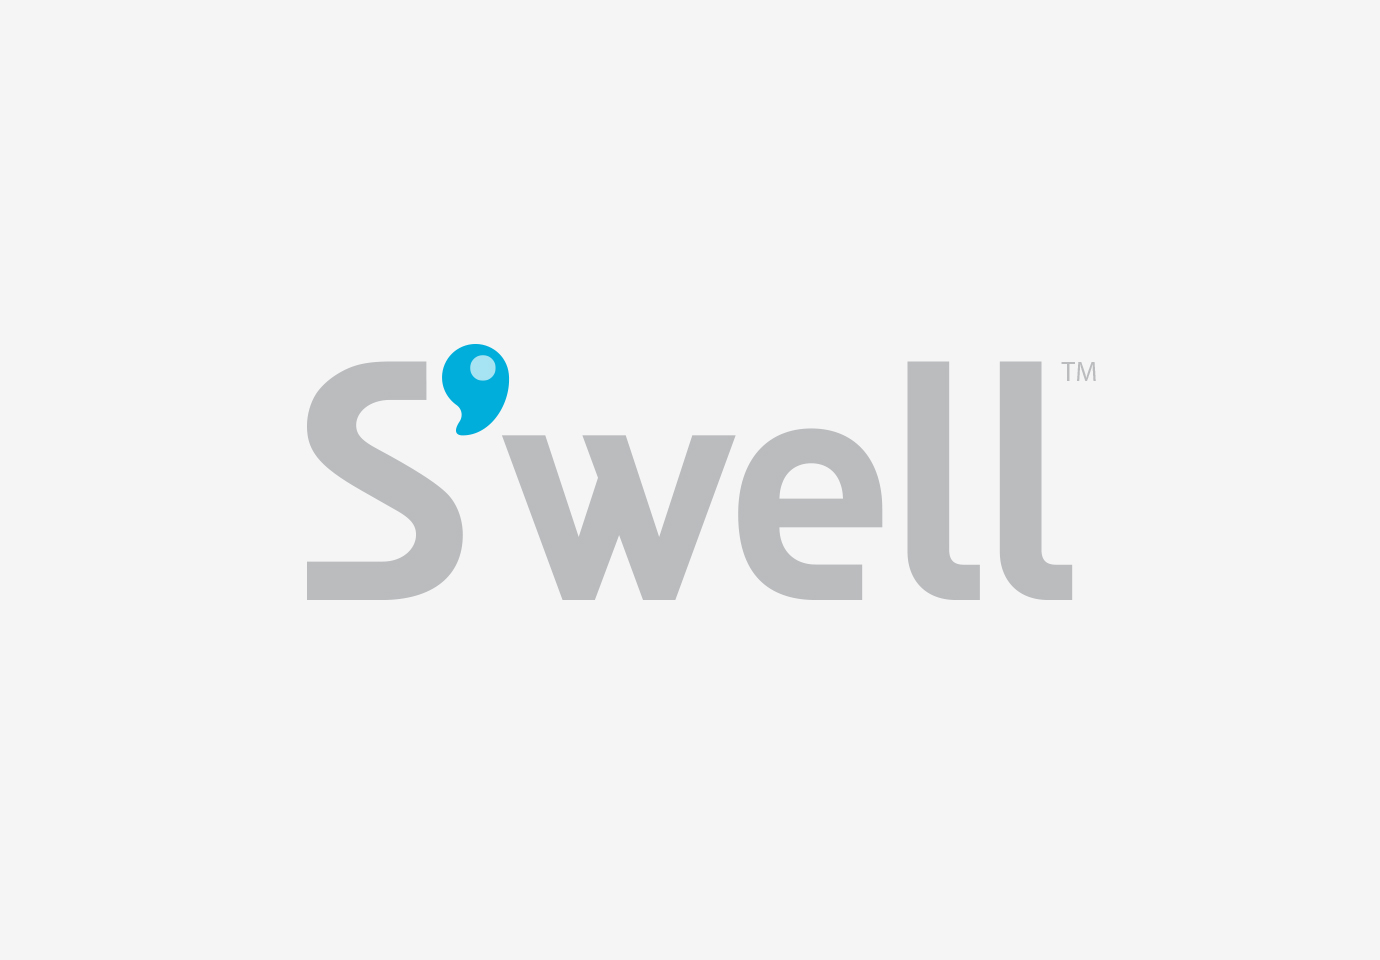 The Swell bottle logo, with light grey type and an apostrophe after the S that mimics a droplet of water.